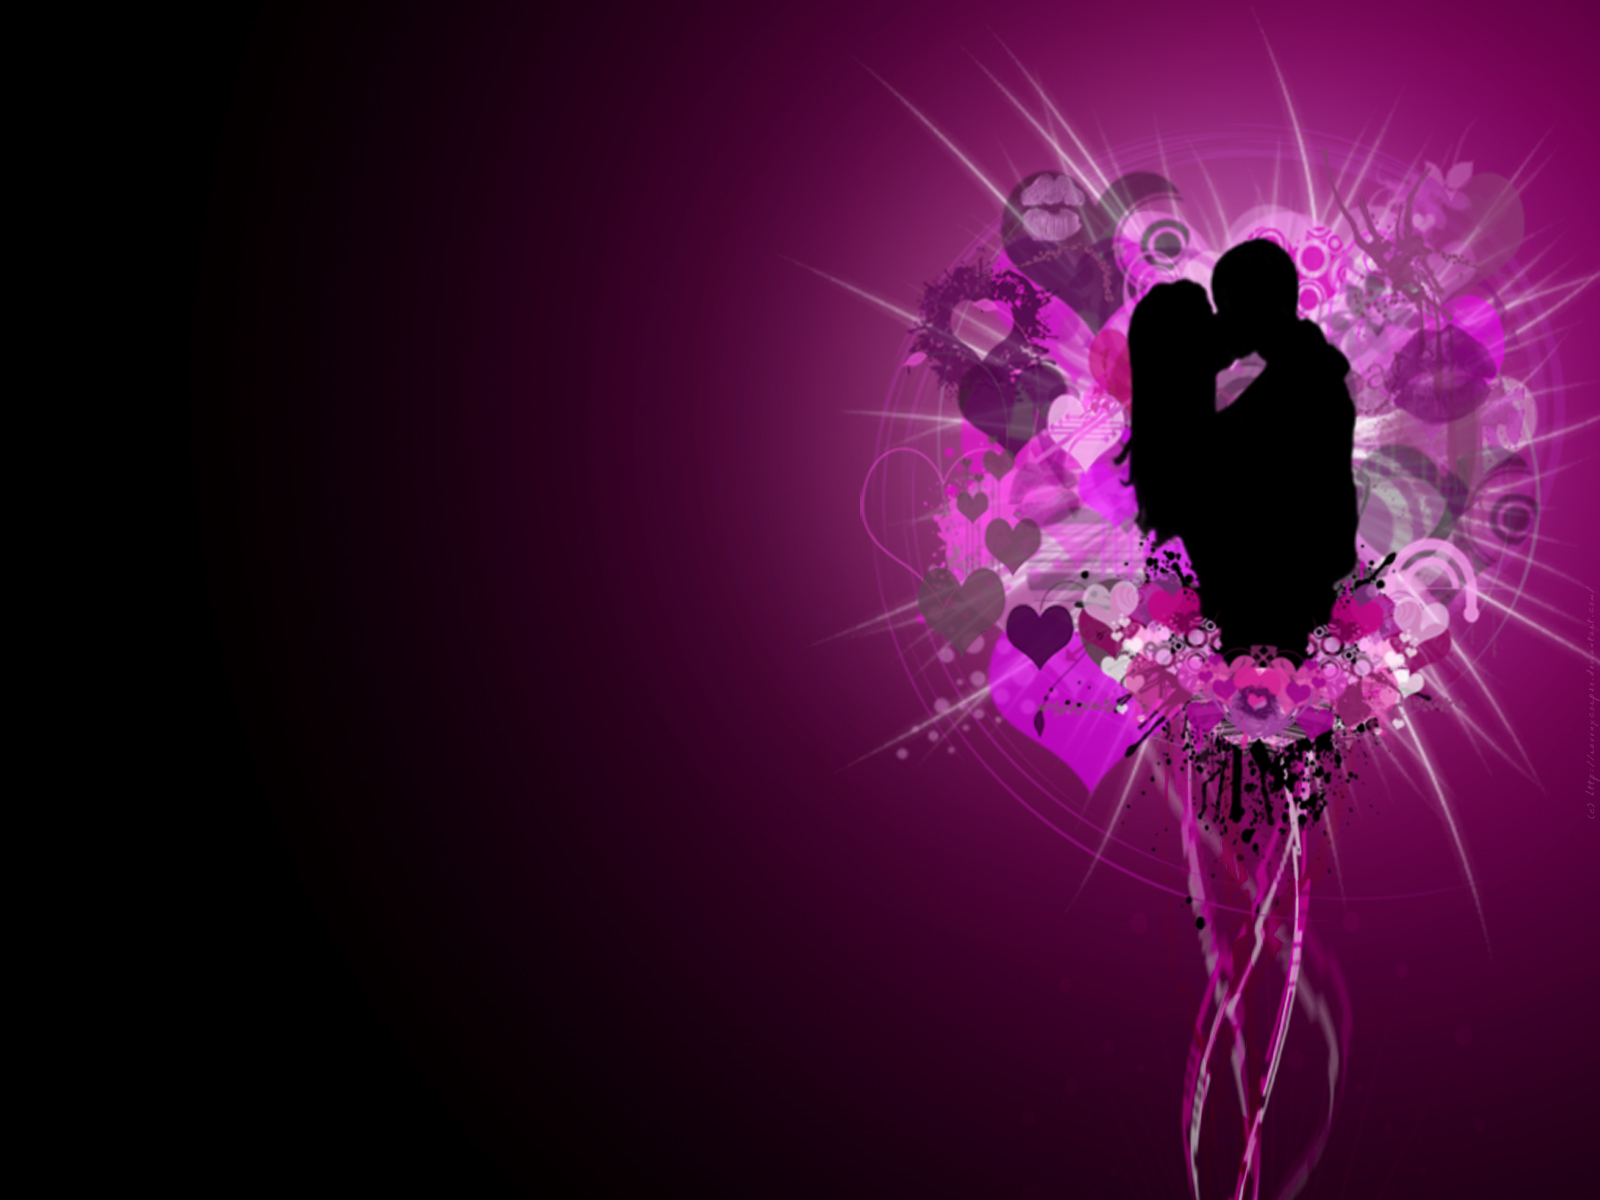 Lovely Love Desktop Wallpaper : Abstract Lovely Lovely 3d Wallpaper Of Love #7499 Hd Wallpapers Background - HDesktops.com